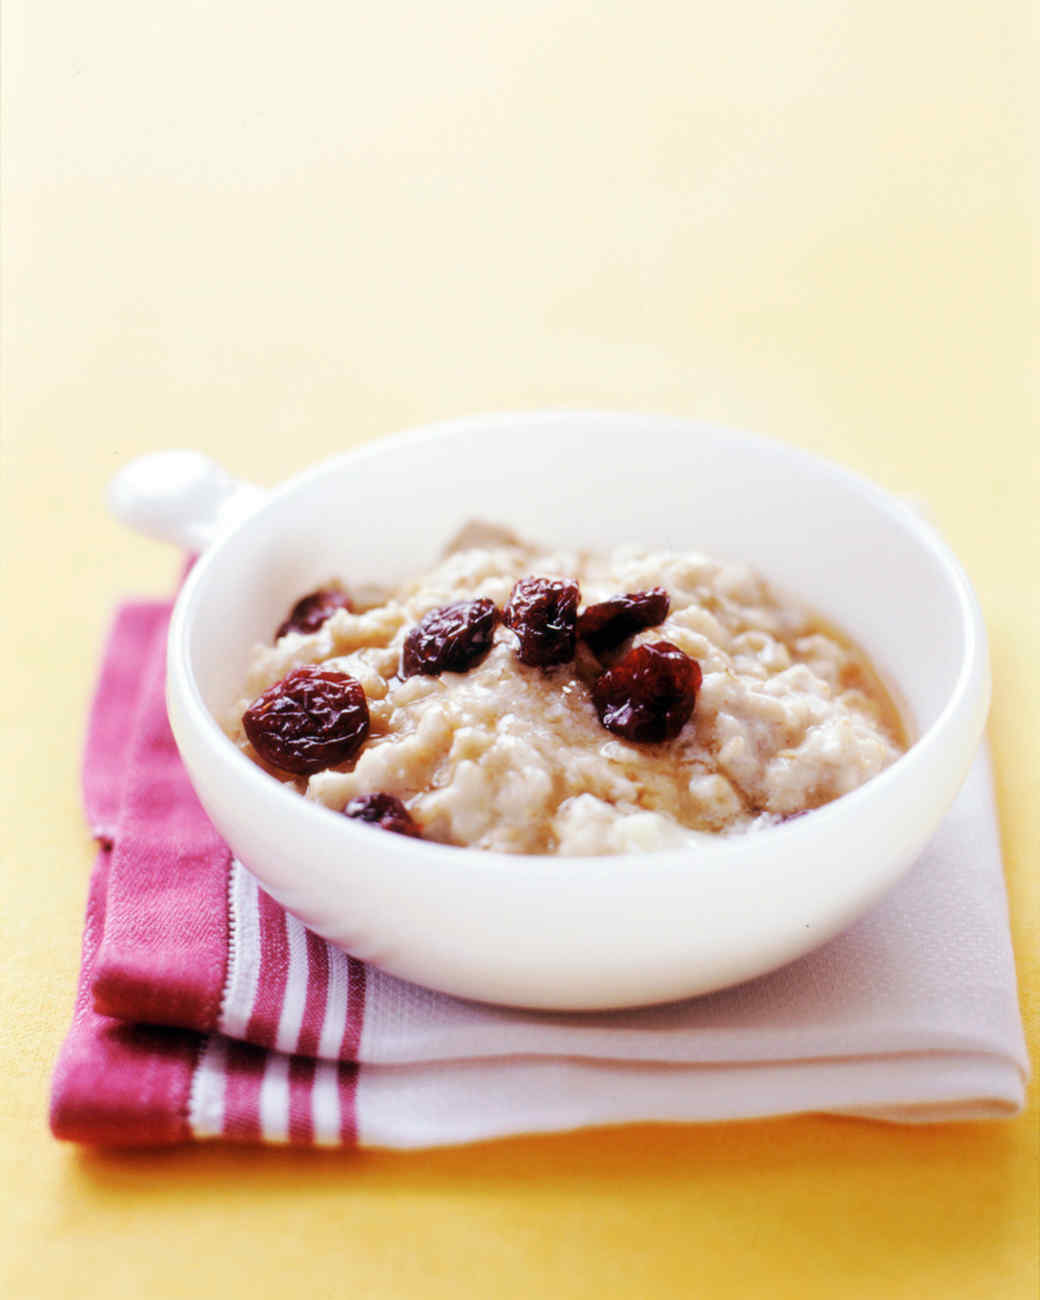 a100600_0304_oatmeal.jpg